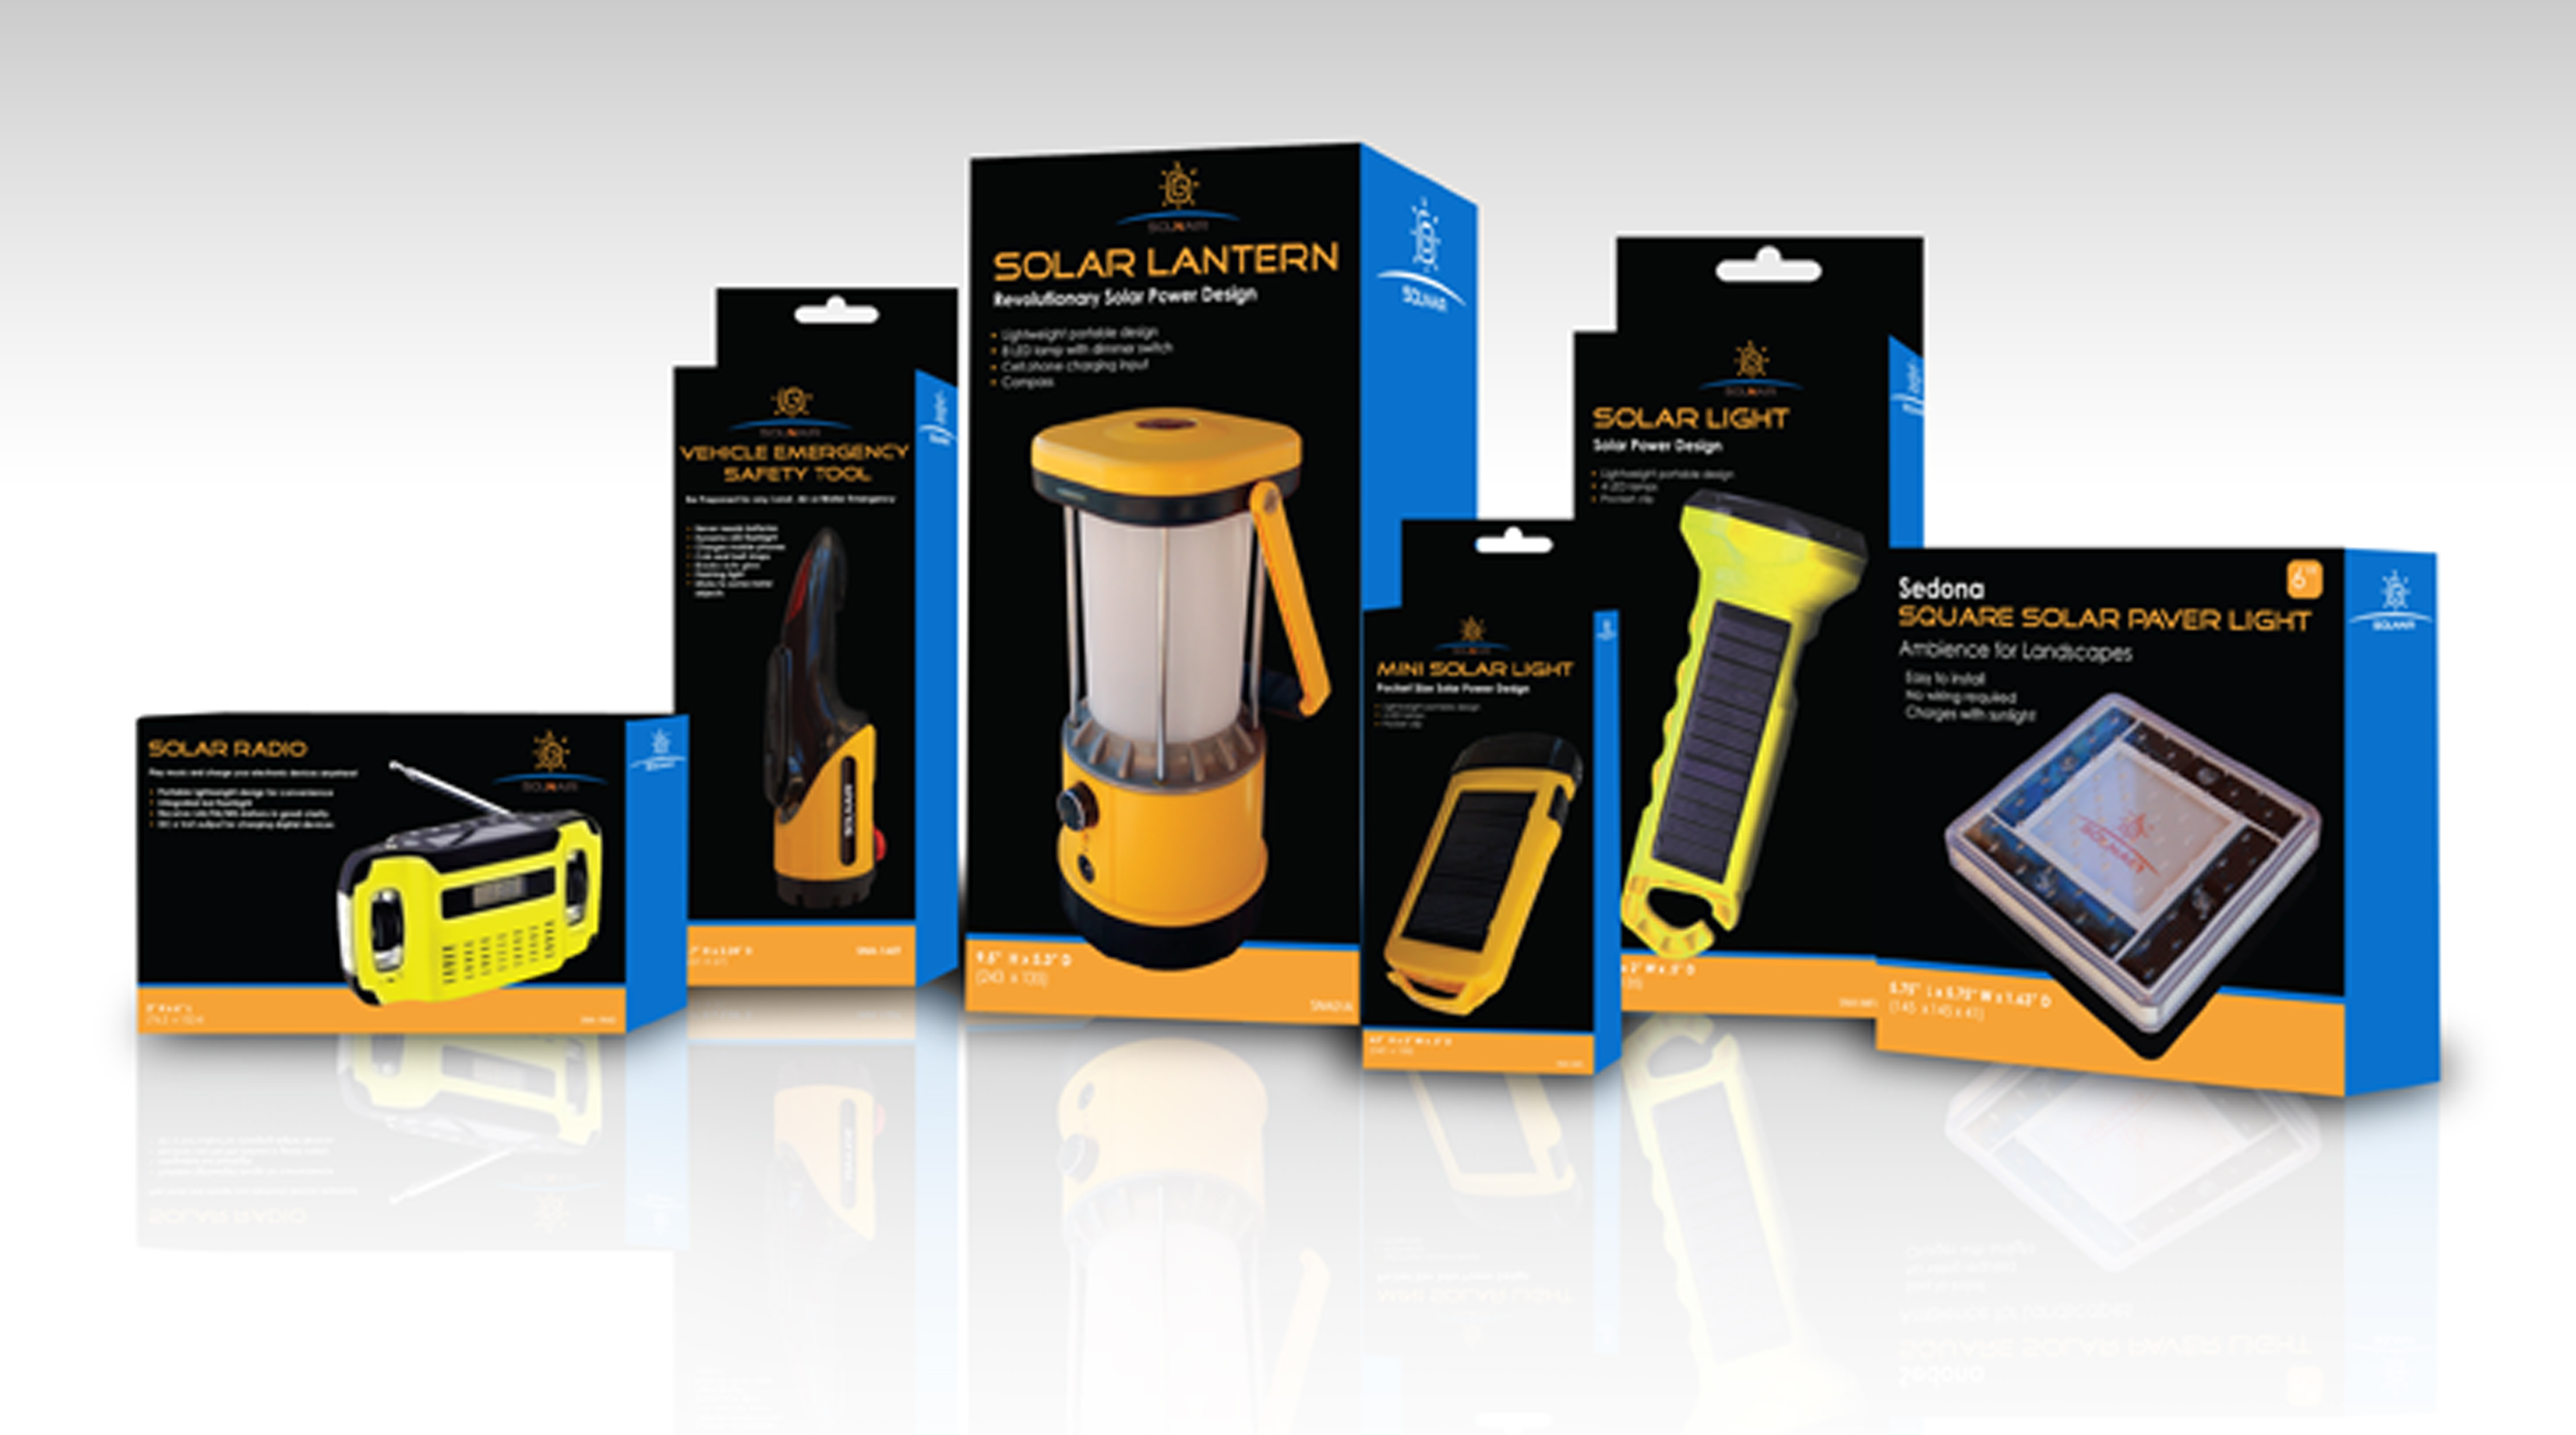 Avadium packaging design of solar power products using innovative technology